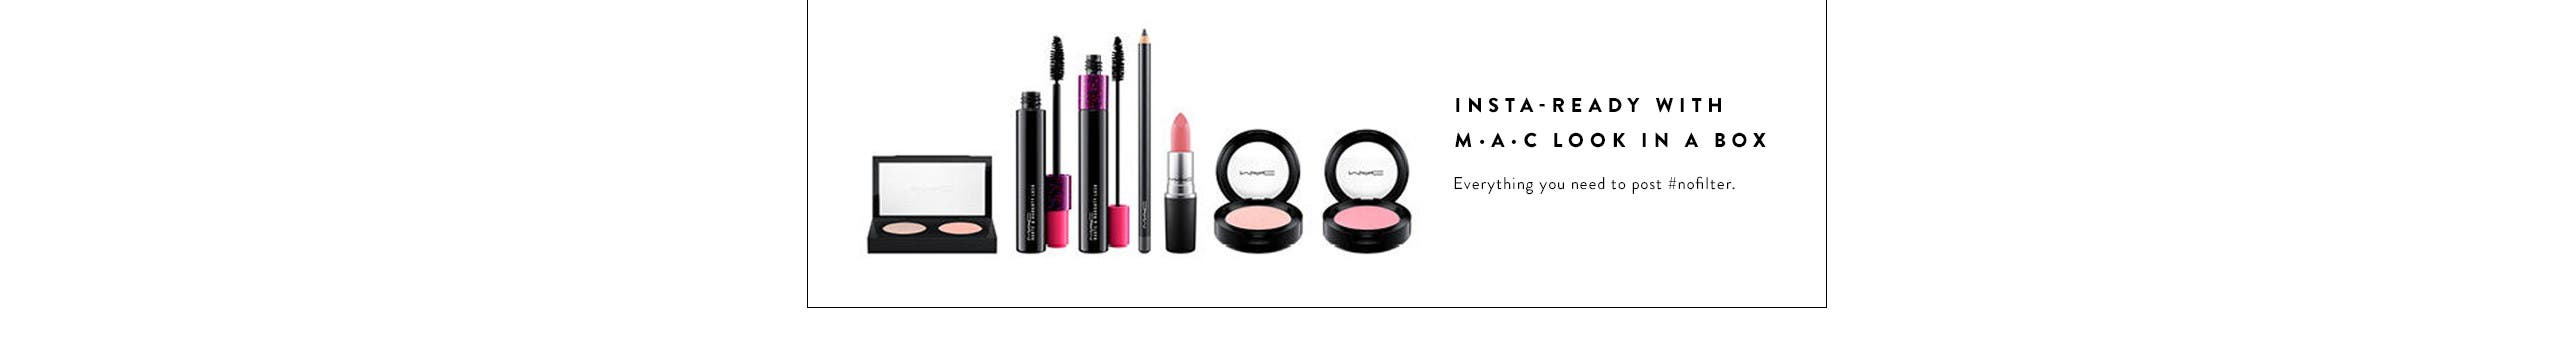 M·A·C Look in a Box makeup.